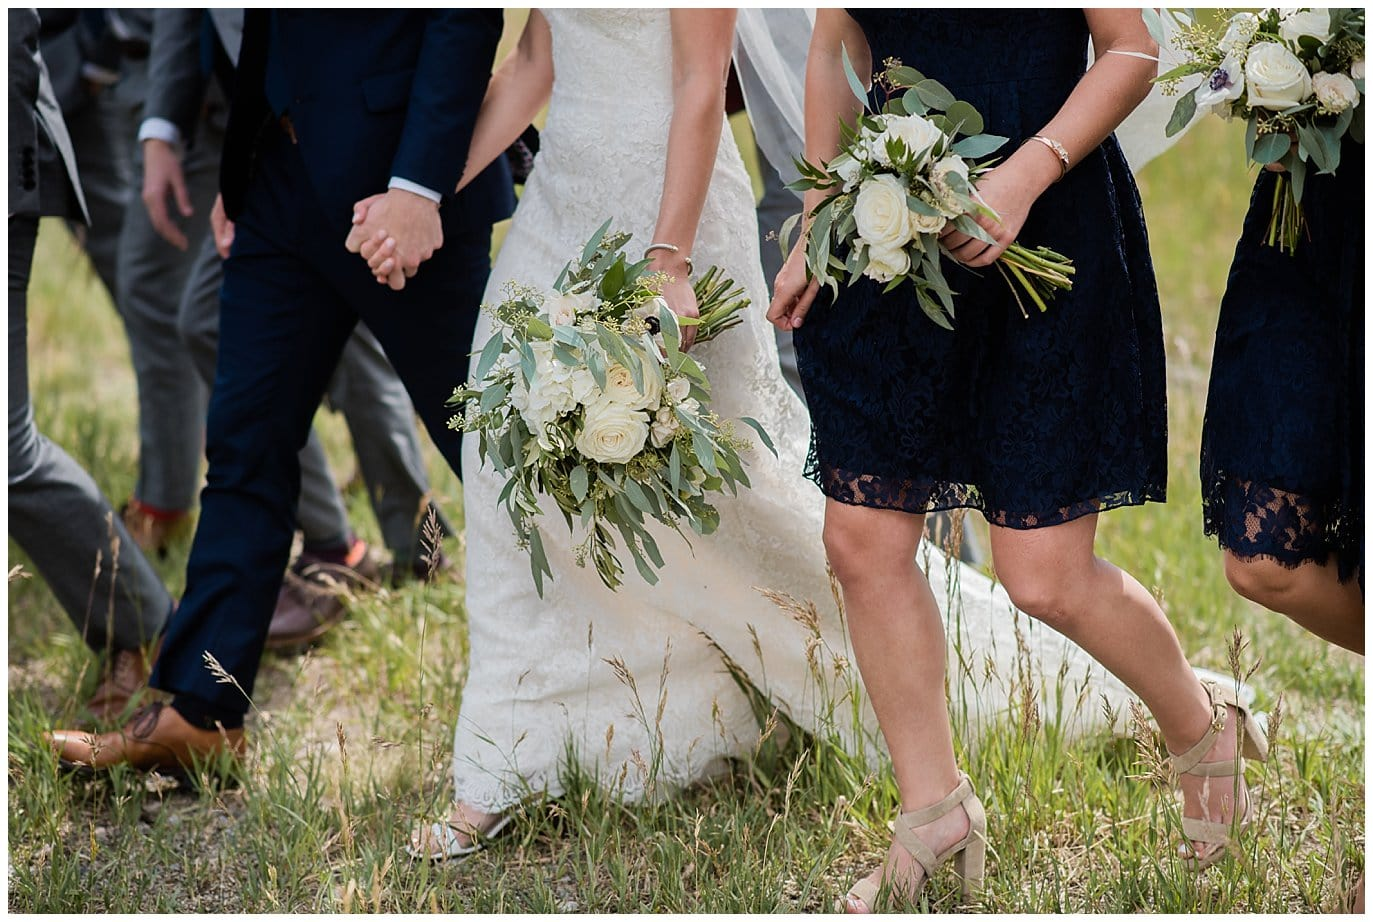 ivory and green wedding flowers and navy bridesmaid dresses at Arapahoe Basin Black Mountain Lodge Wedding by Colorado Wedding Photographer Jennie Crate